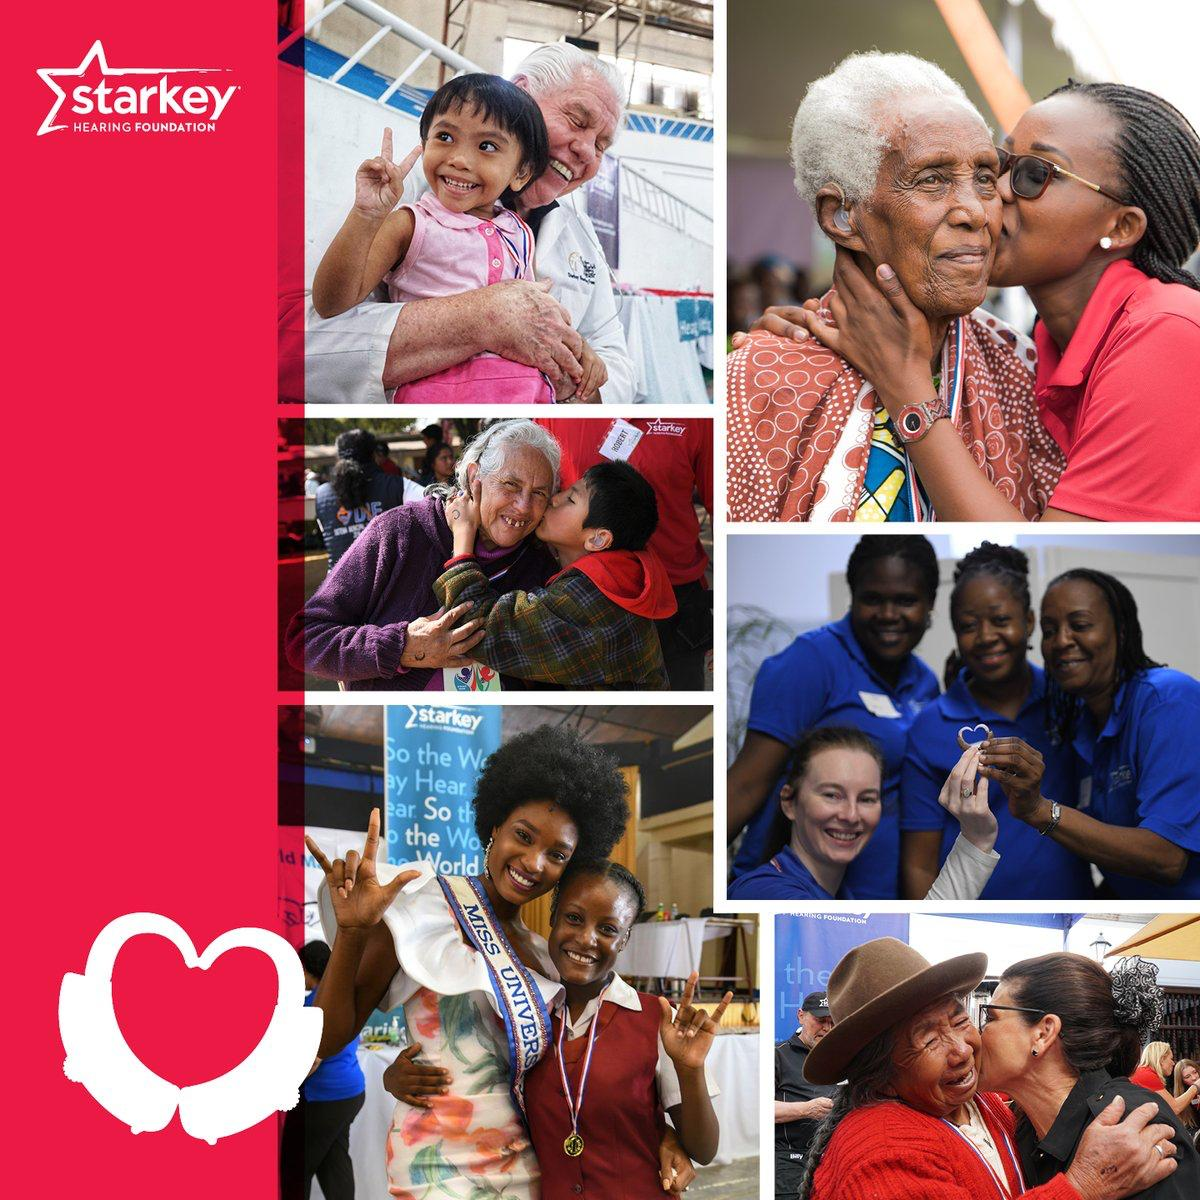 ... help us continue to spread love by giving the gift of hearing to those in need. Donate at http://bit.ly/Donate_SHF pic.twitter.com/9tttW0hiHP